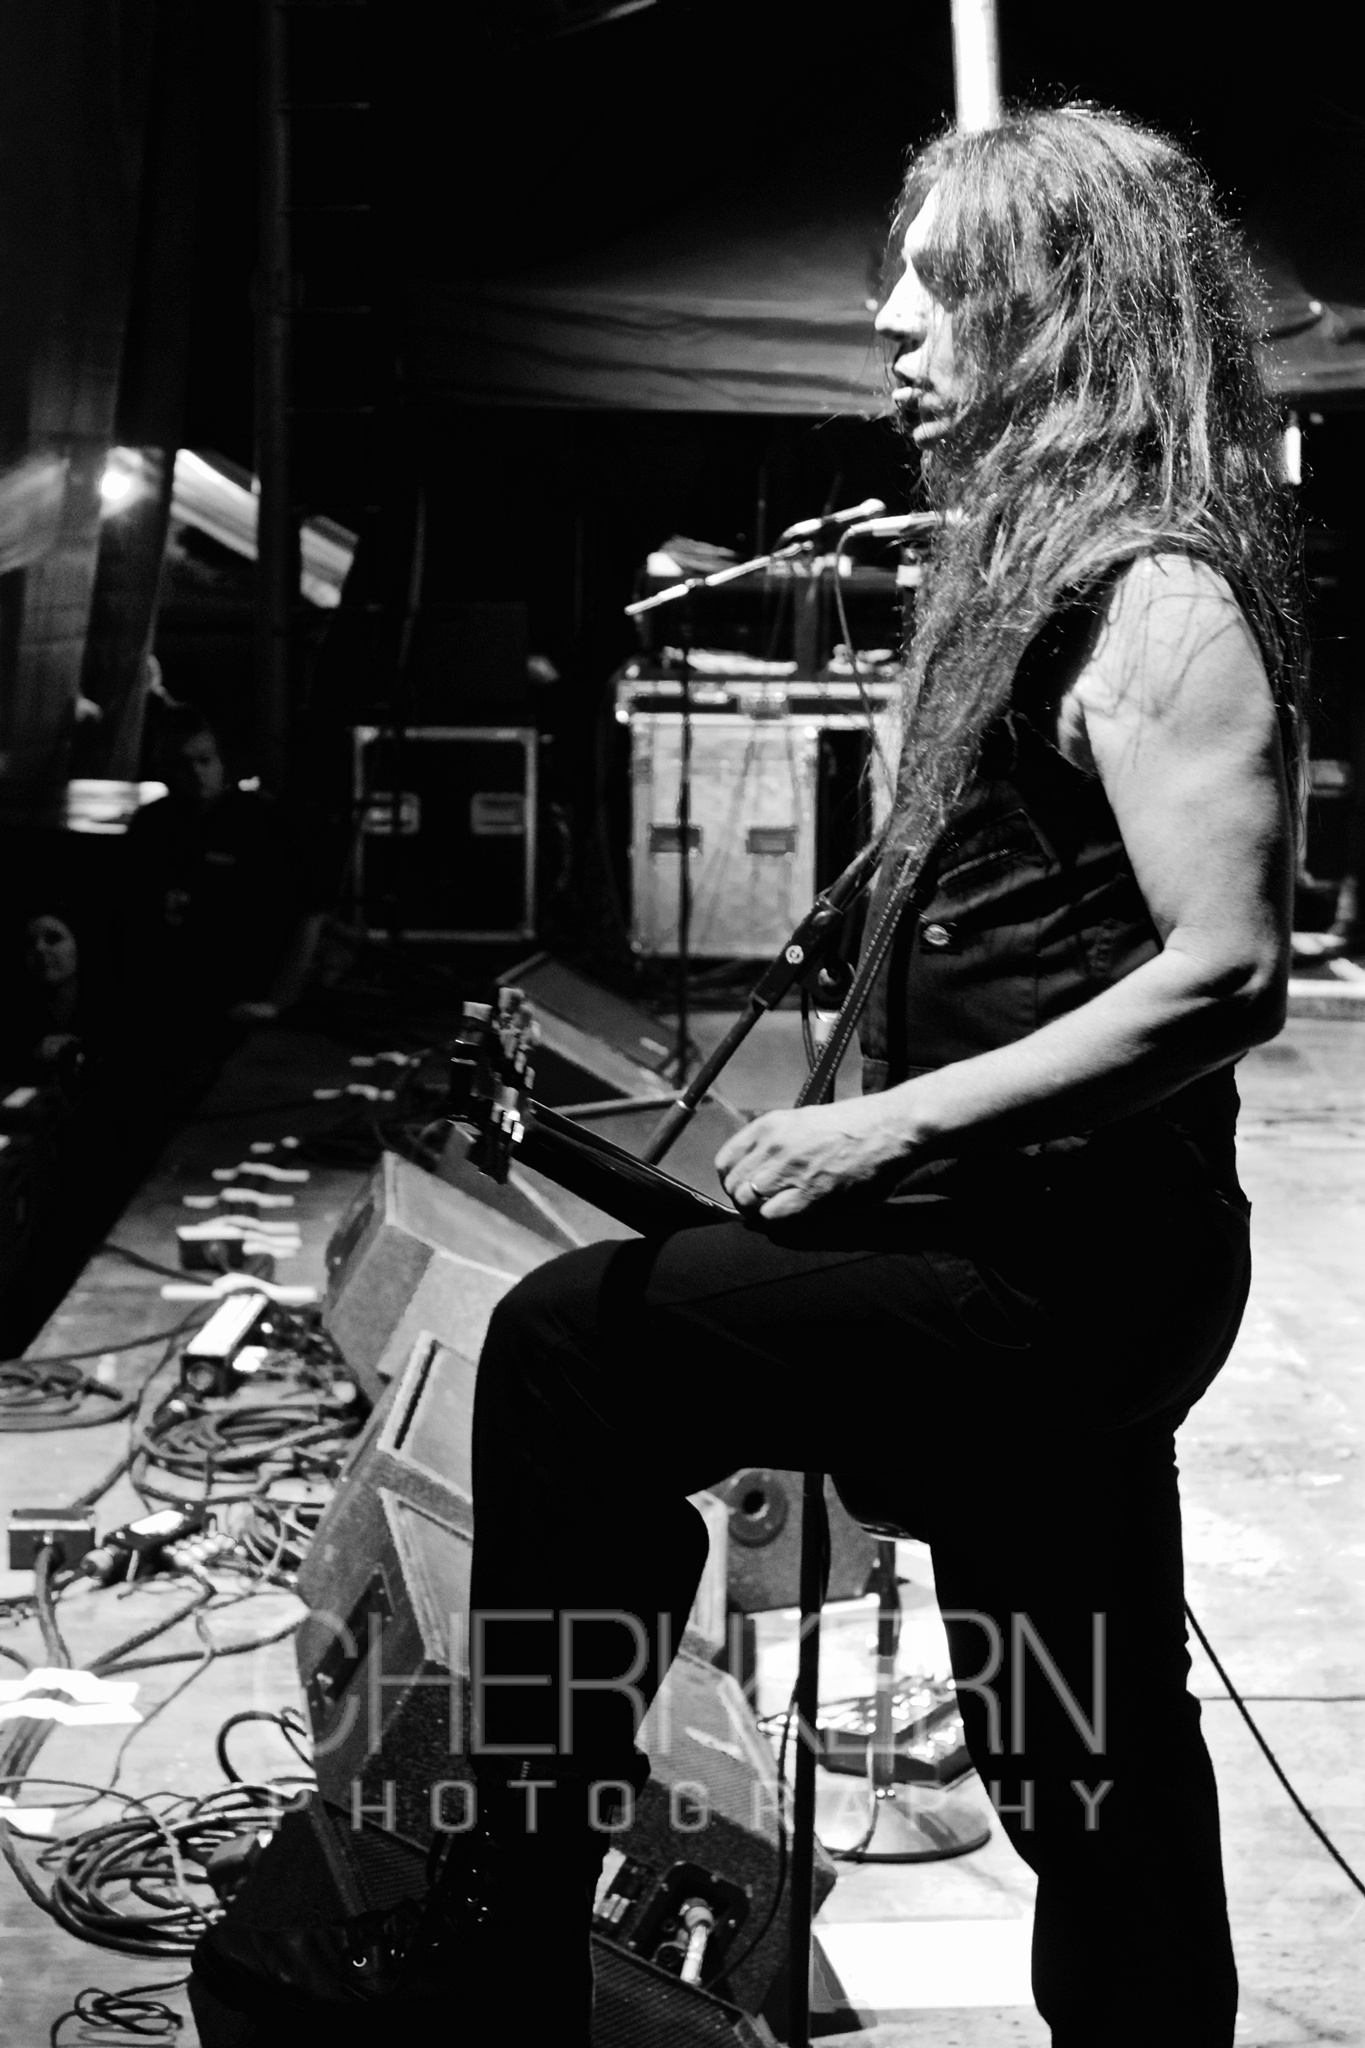 On Stage with SKID ROW by Cheri Kern Photography